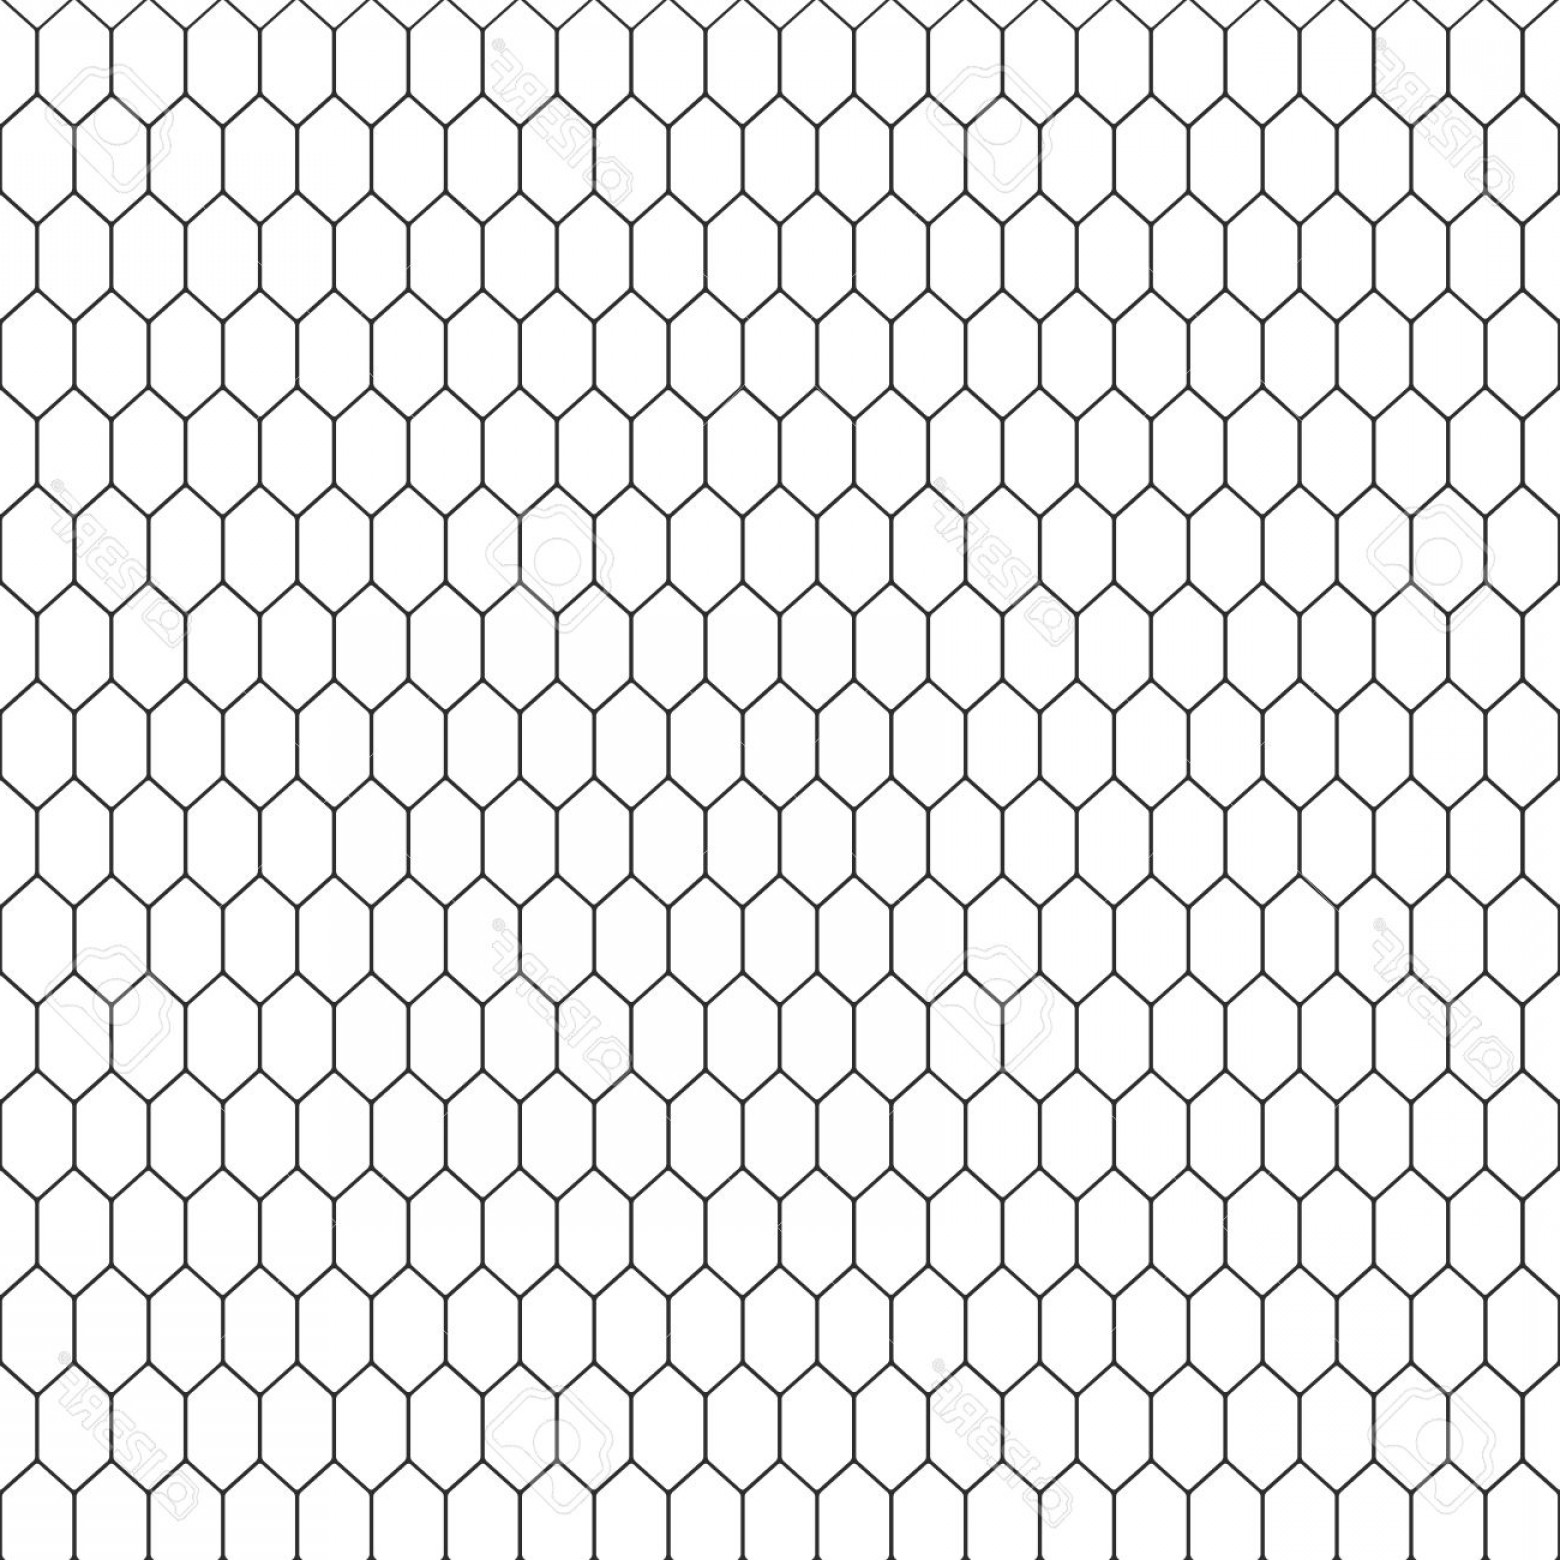 Rattlesnake Skin Vector: Photostock Vector Snake Skin Texture Seamless Pattern Black And White Background Vector Illustration